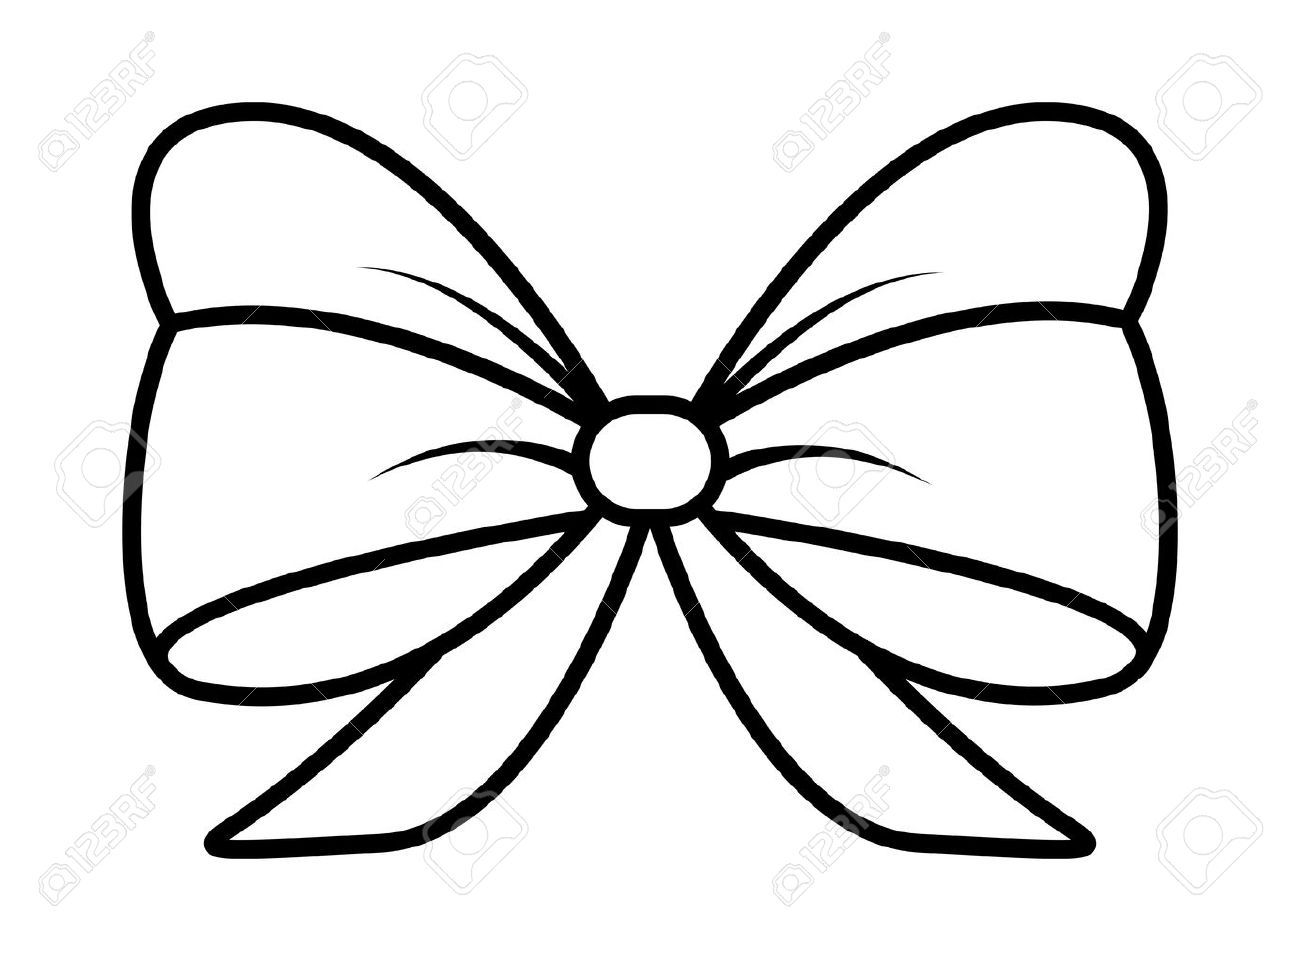 Library Of Ribbon Bow Black And White Library Black